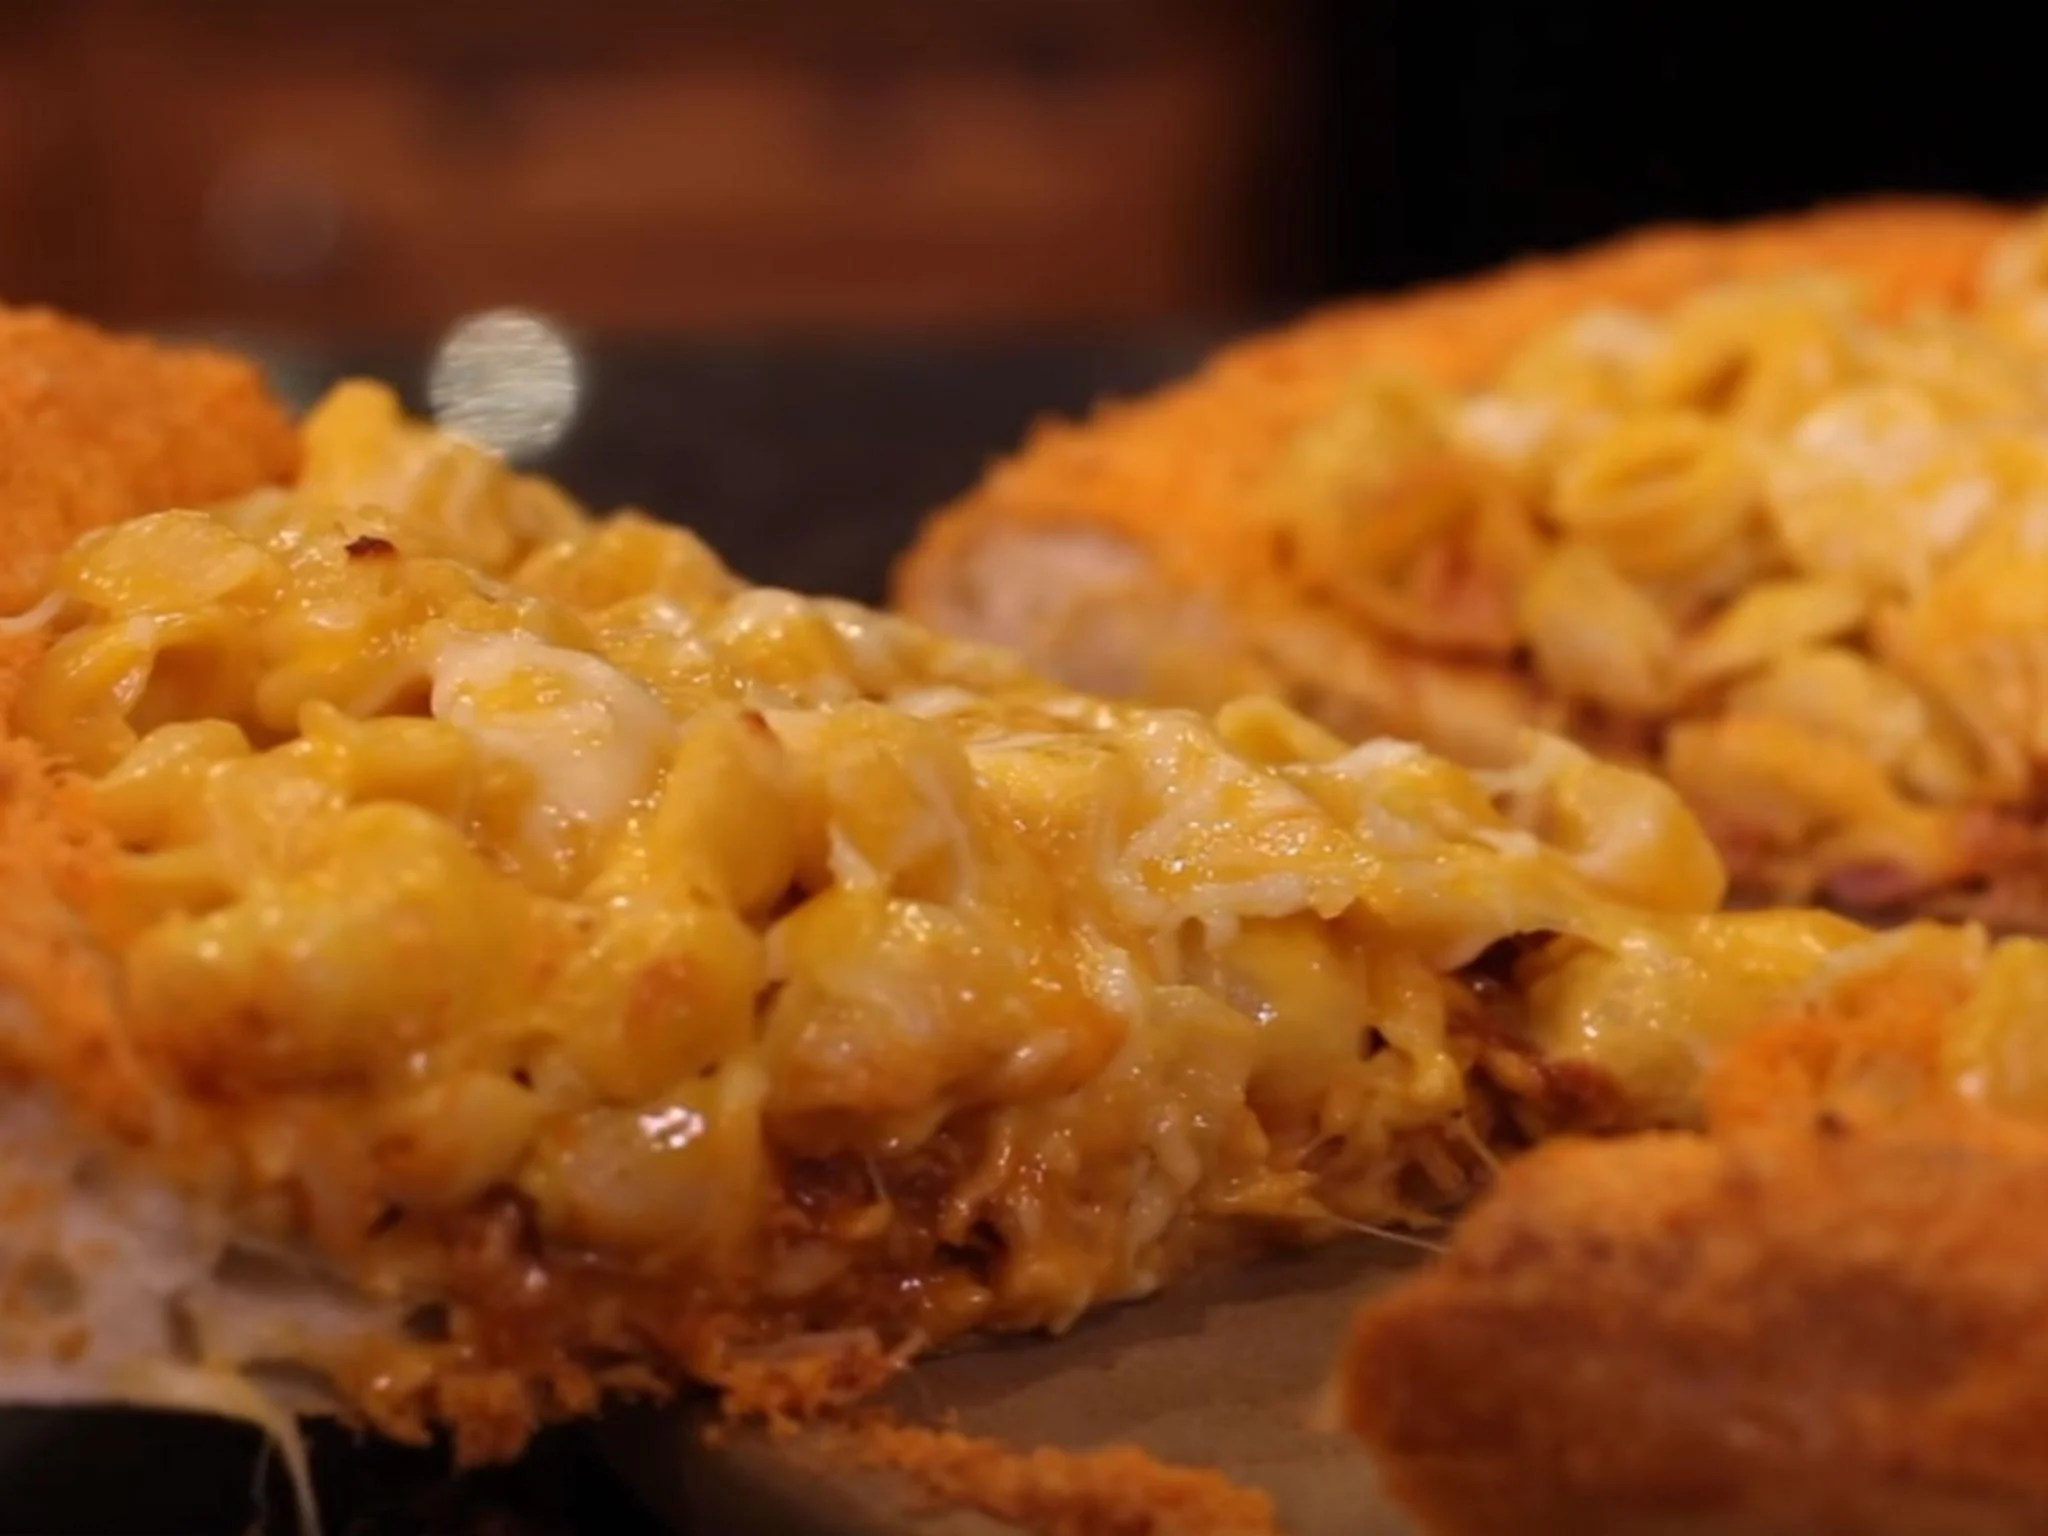 Impressive Pulled Pork Pizza Mac N Cheese Pizza Near Me Mac N Cheese Pizza Calories Pulled Pork Pizza A Slice Independent Food Blogger Makes Macaroni Food Blogger Makes Macaroni nice food Mac N Cheese Pizza